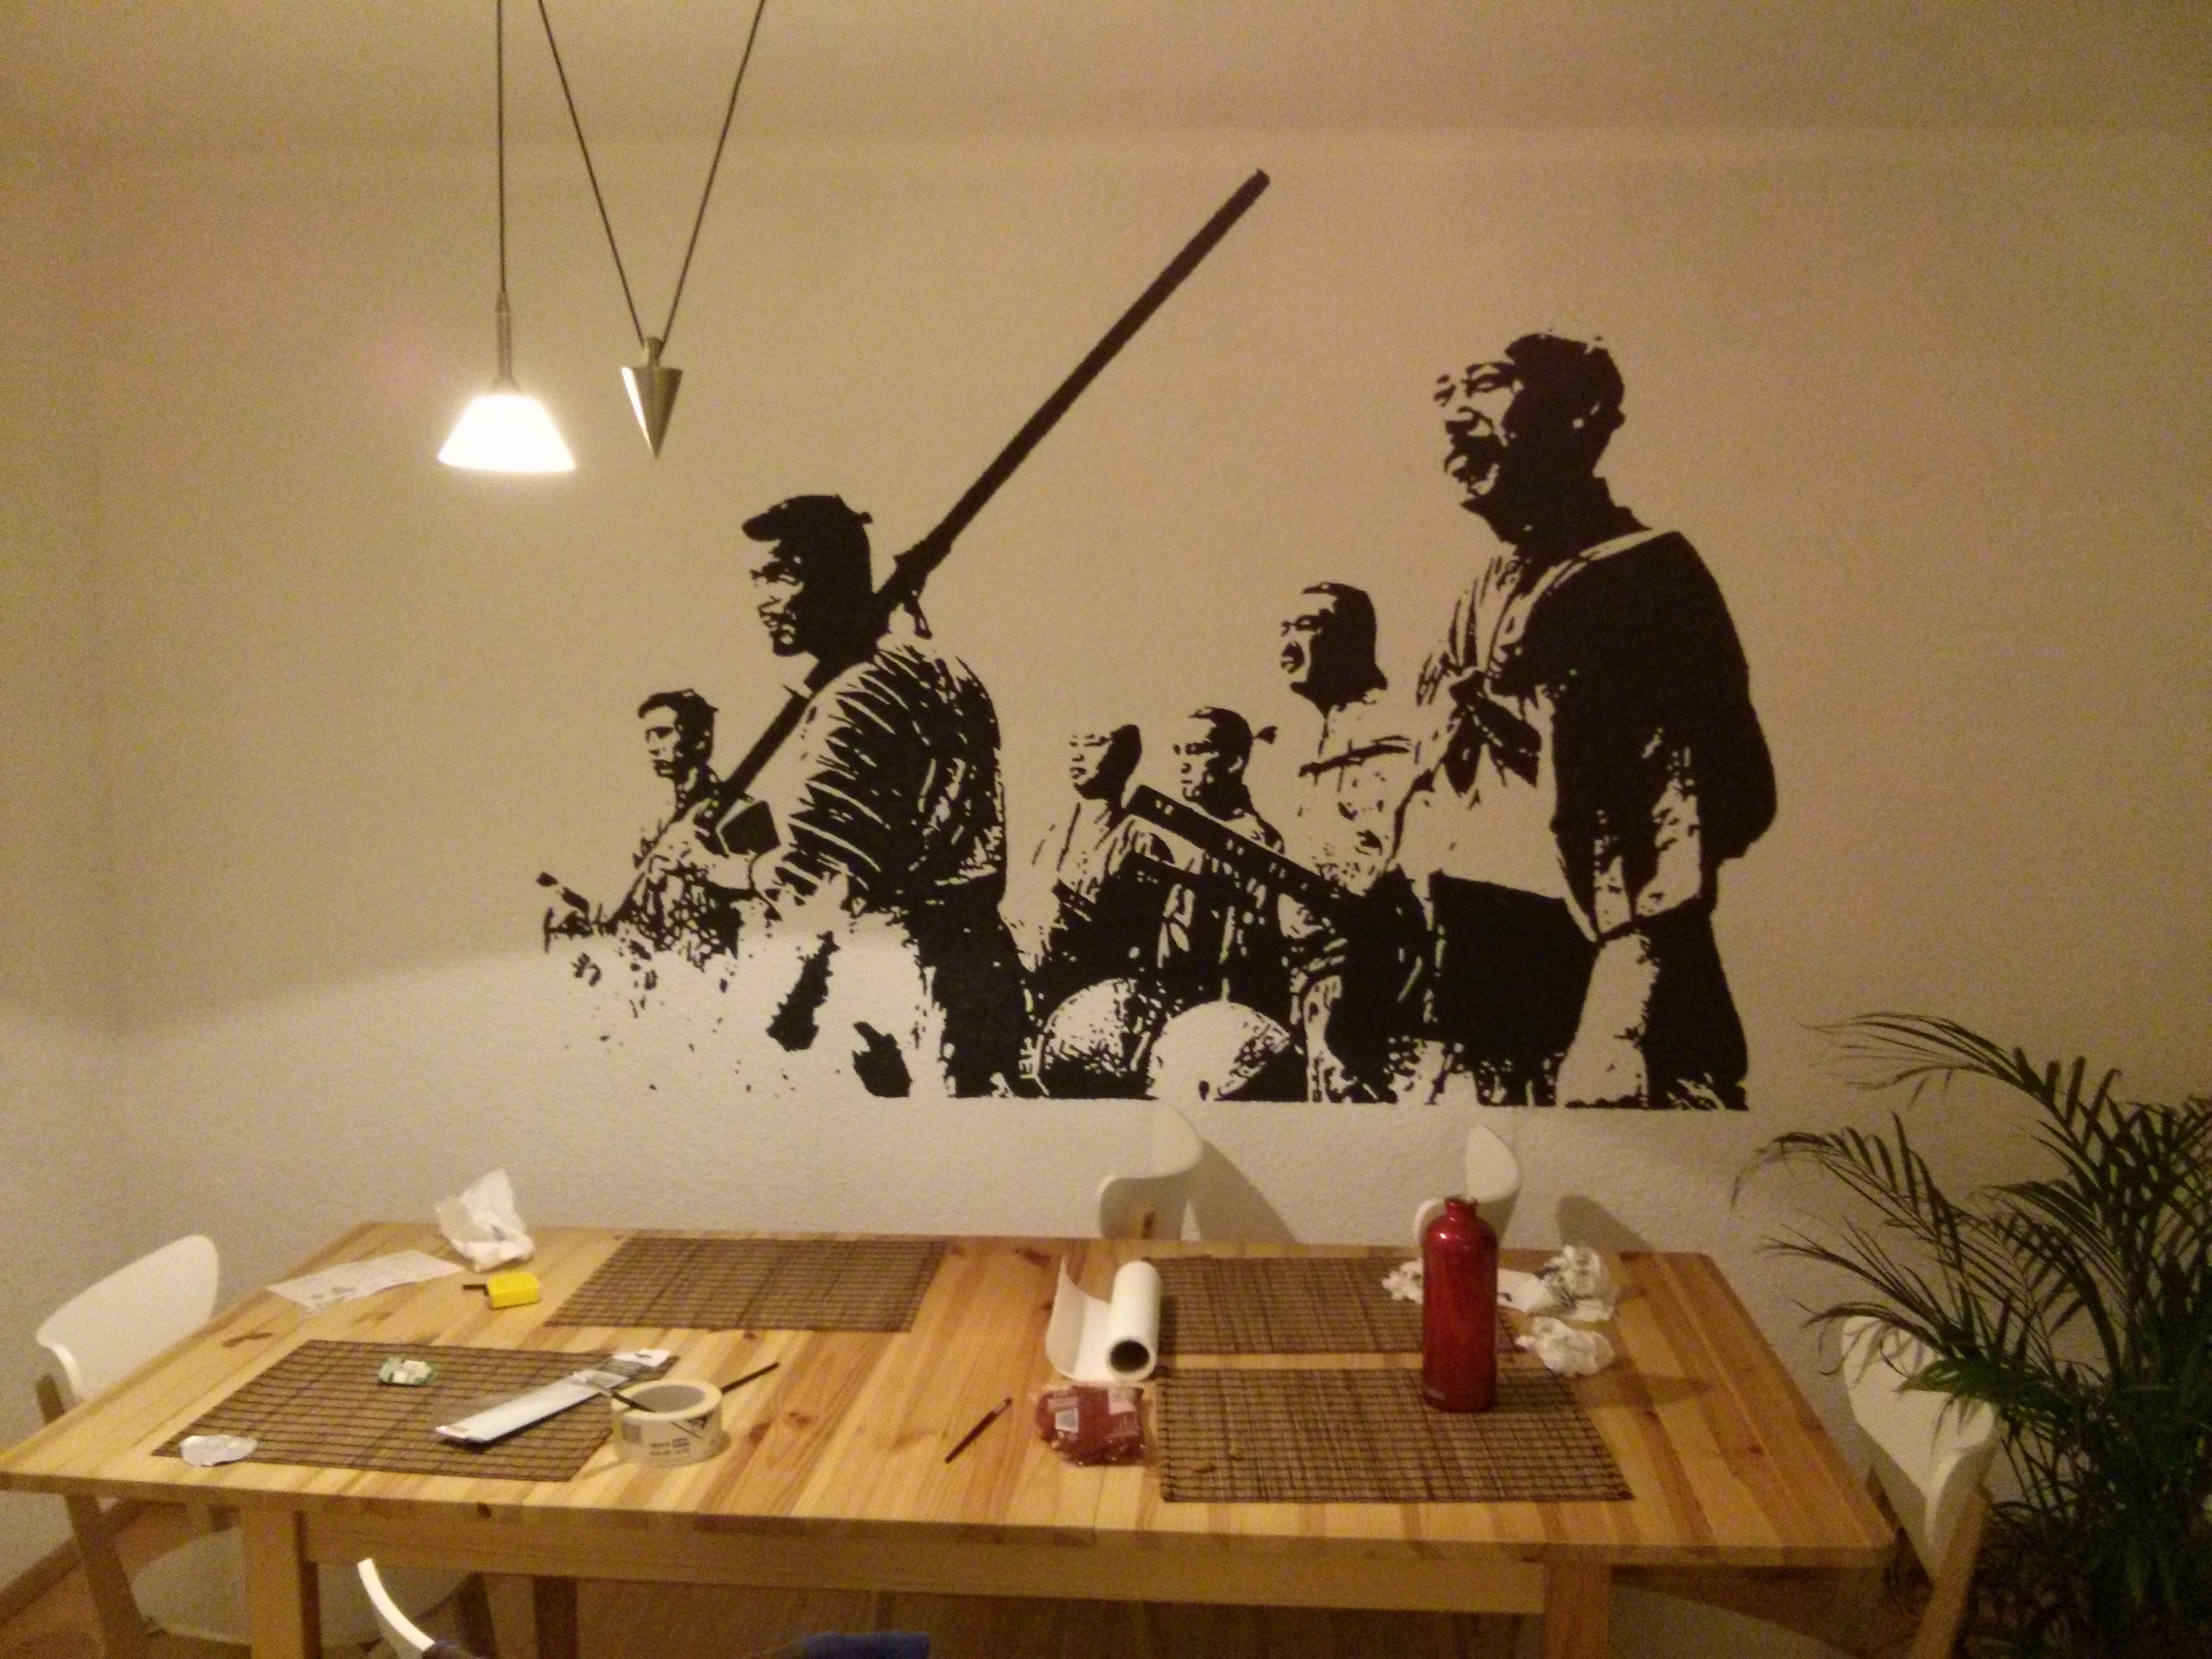 Do It Yourself Wall Art: Seven Samurai In Your Home! – Cube Breaker With Regard To 2018 Samurai Wall Art (Gallery 1 of 15)